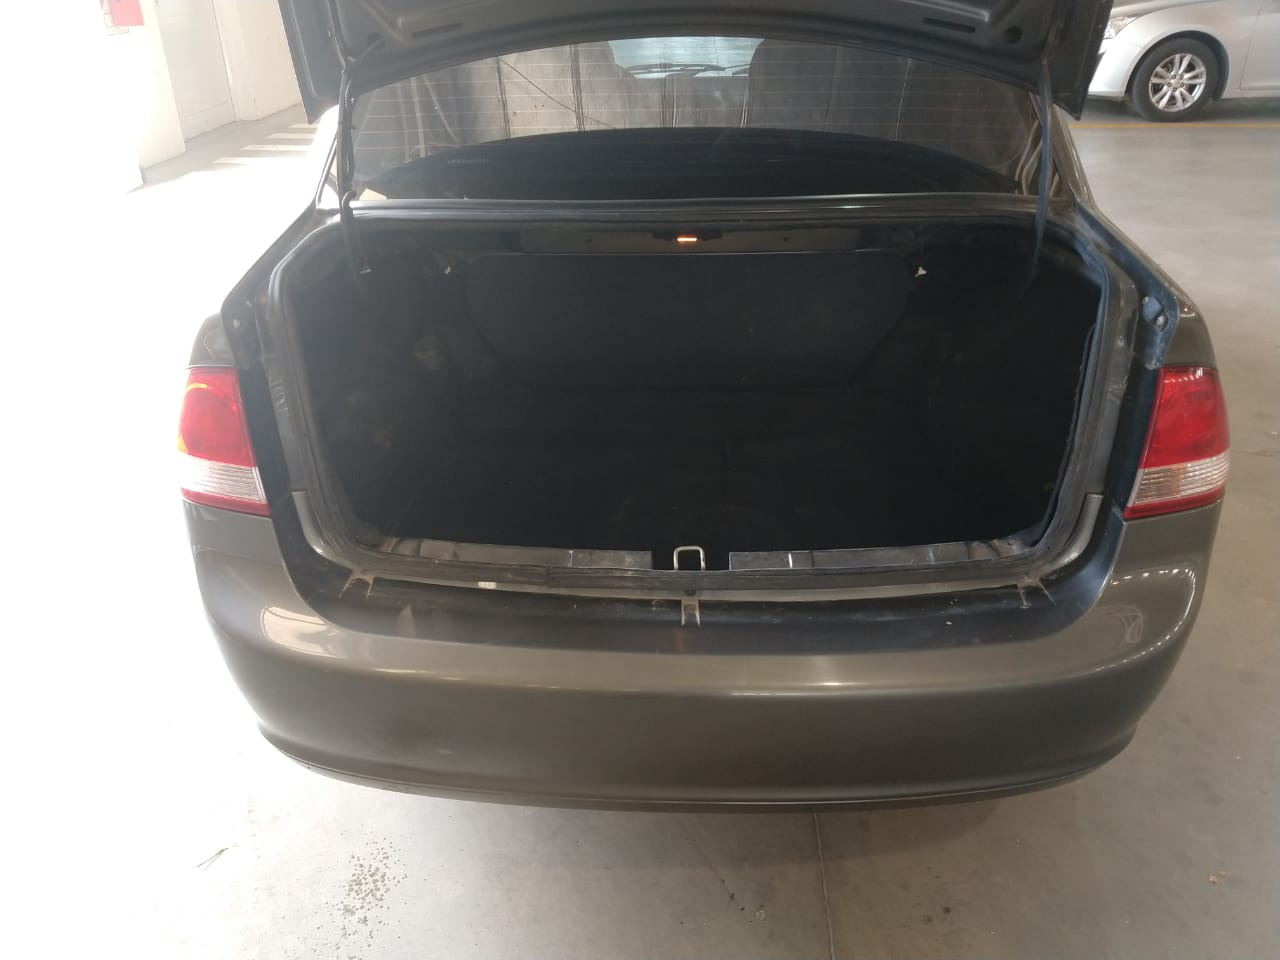 2015 CHEVROLET CLASSIC ABS+AIRBAG 1,4